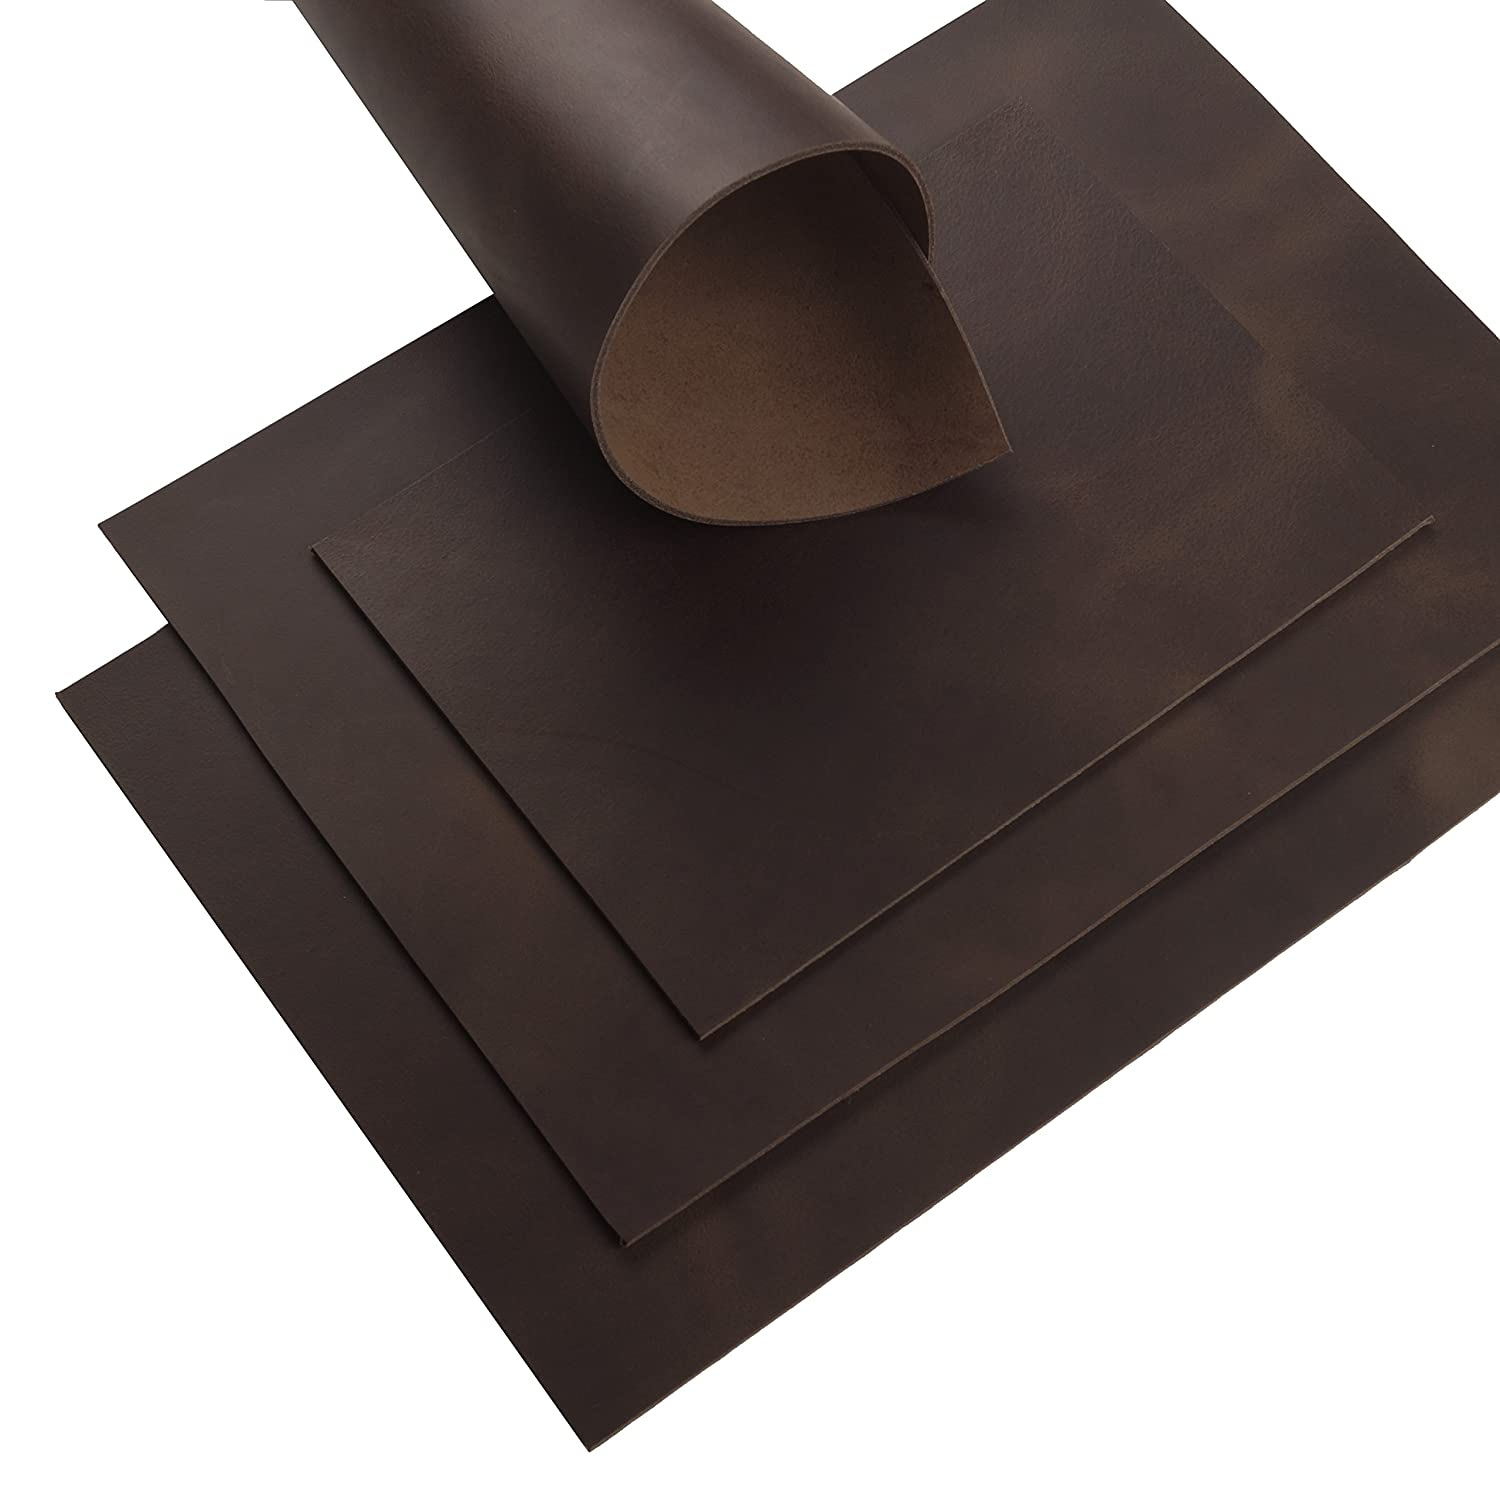 Rindsleder Cacao Pull-Up Finish Design 2,9 mm Dick A5 Braun Leather 29